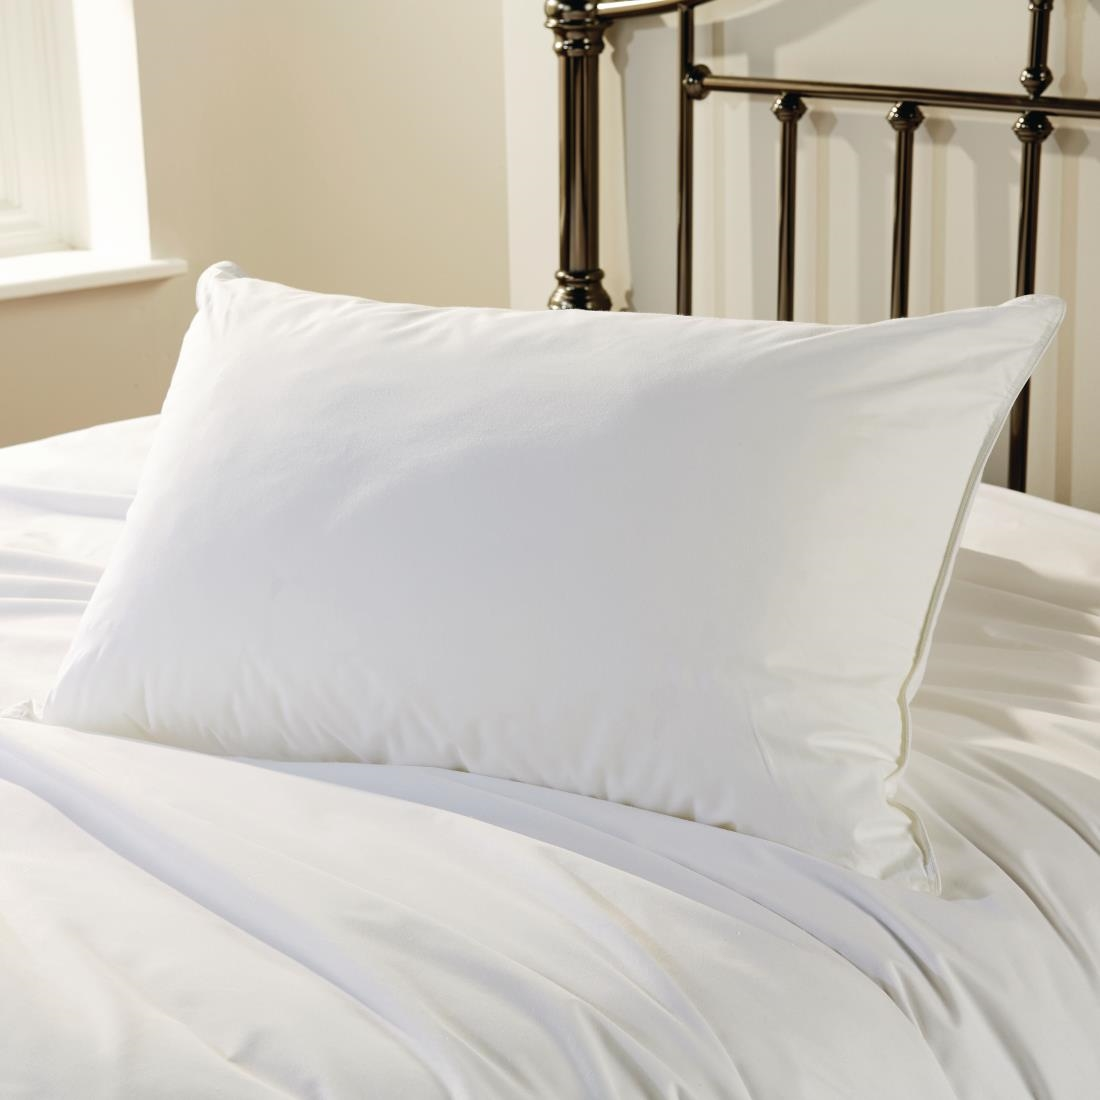 Image of Mitre Luxury Finefibre Pillow Firm